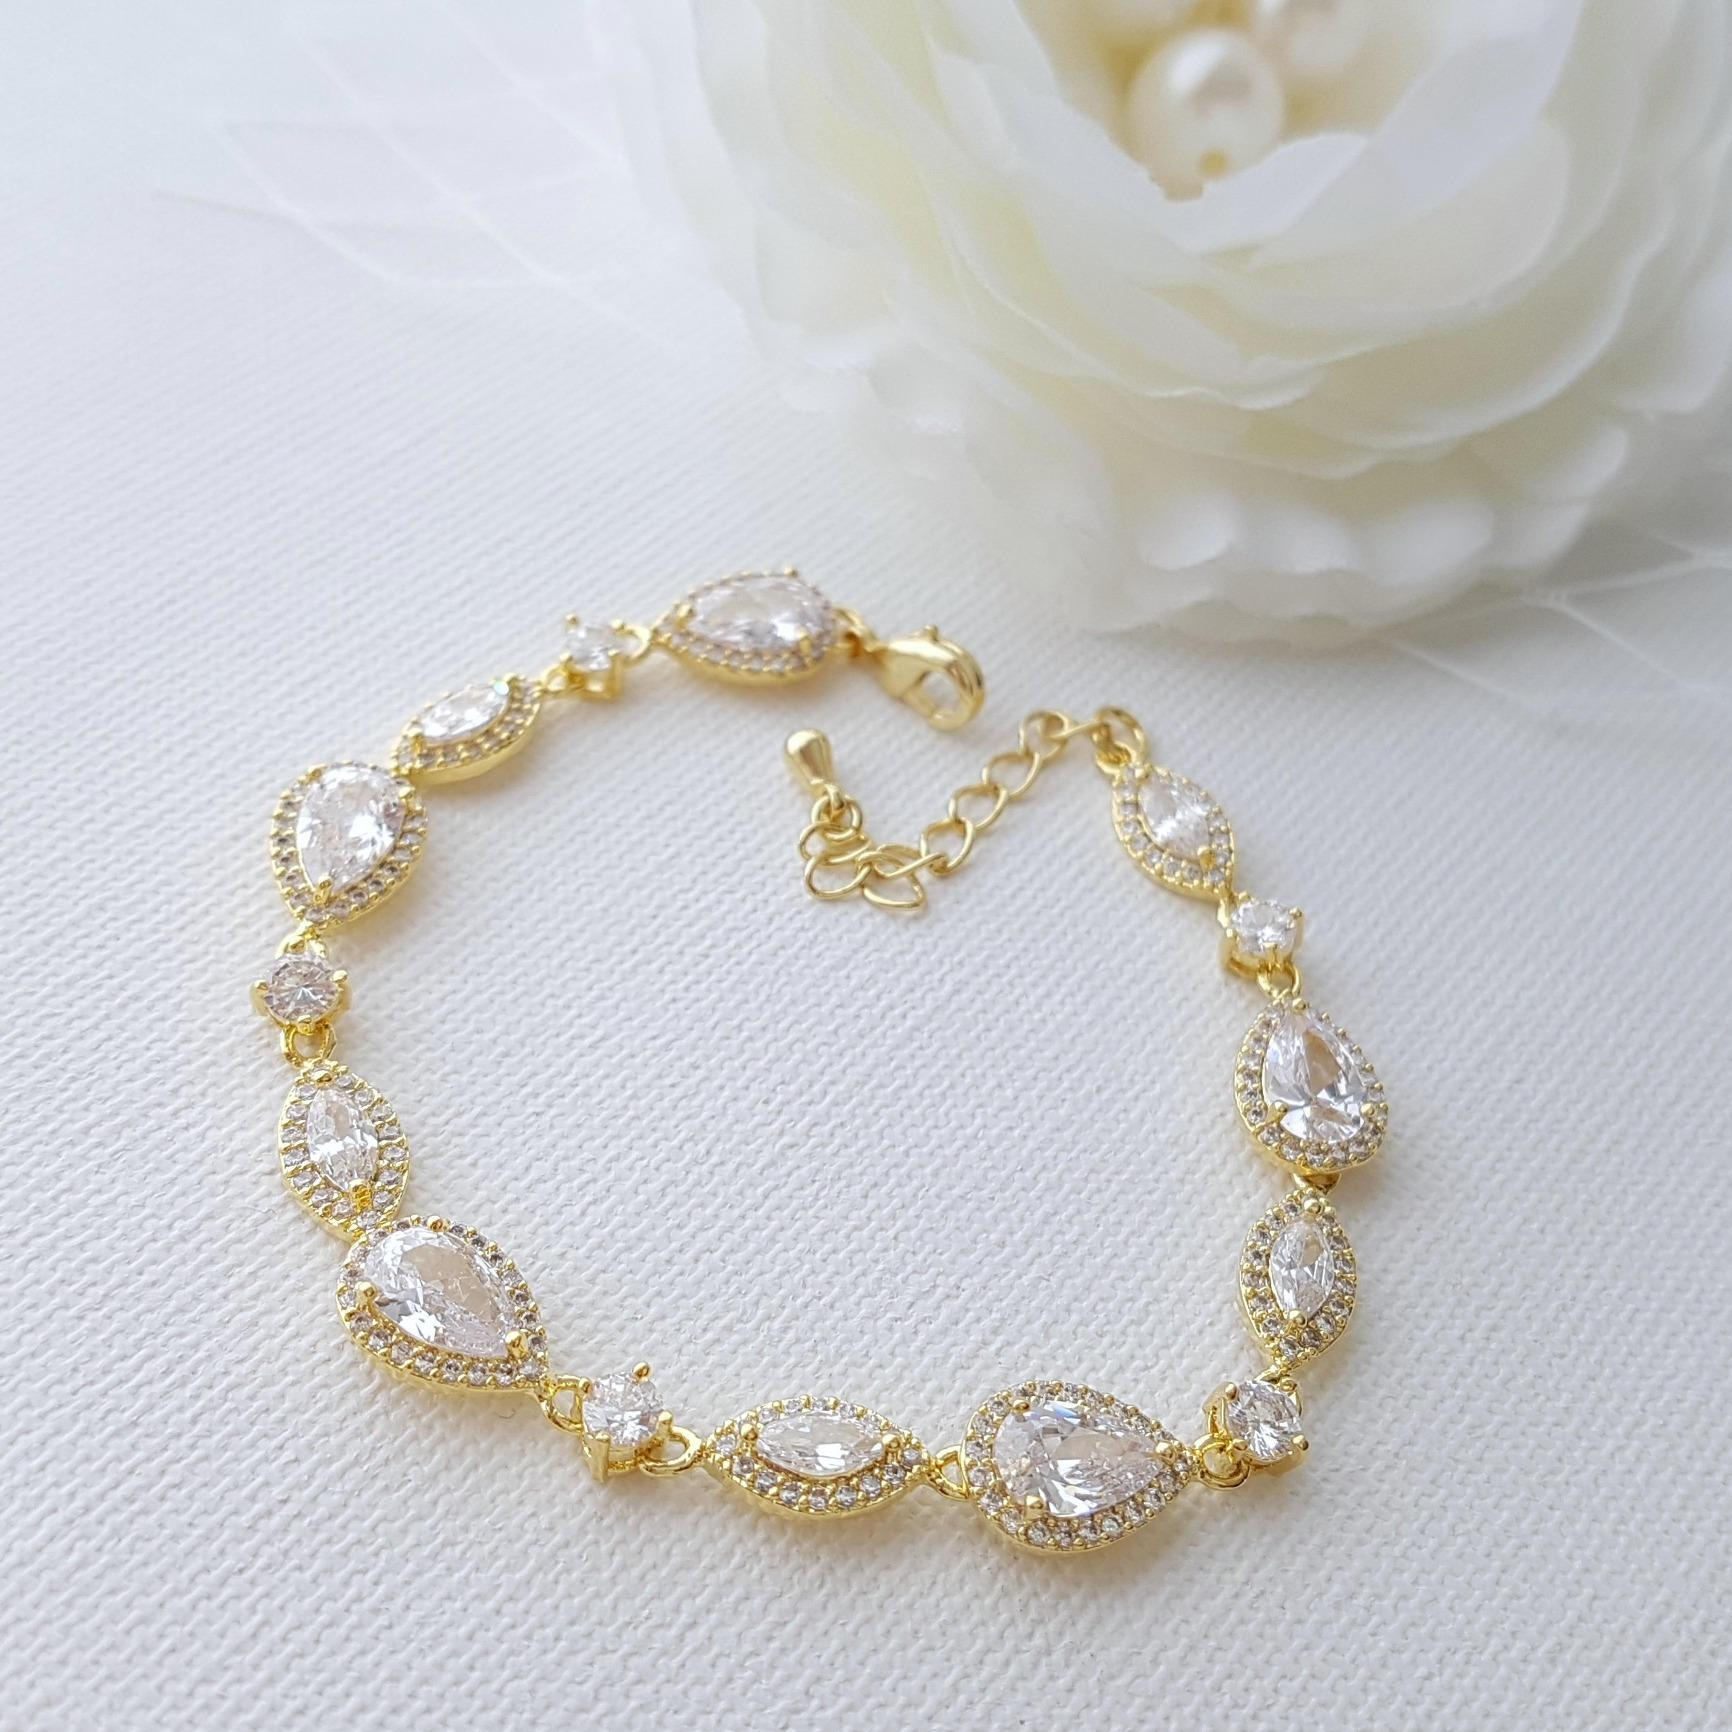 Gold Wedding Bracelet, Crystal Gold Bridal Bracelet, Wedding Jewelry, Simple Bracelet, Bridal Jewelry, Rose Gold, Abby Bracelet